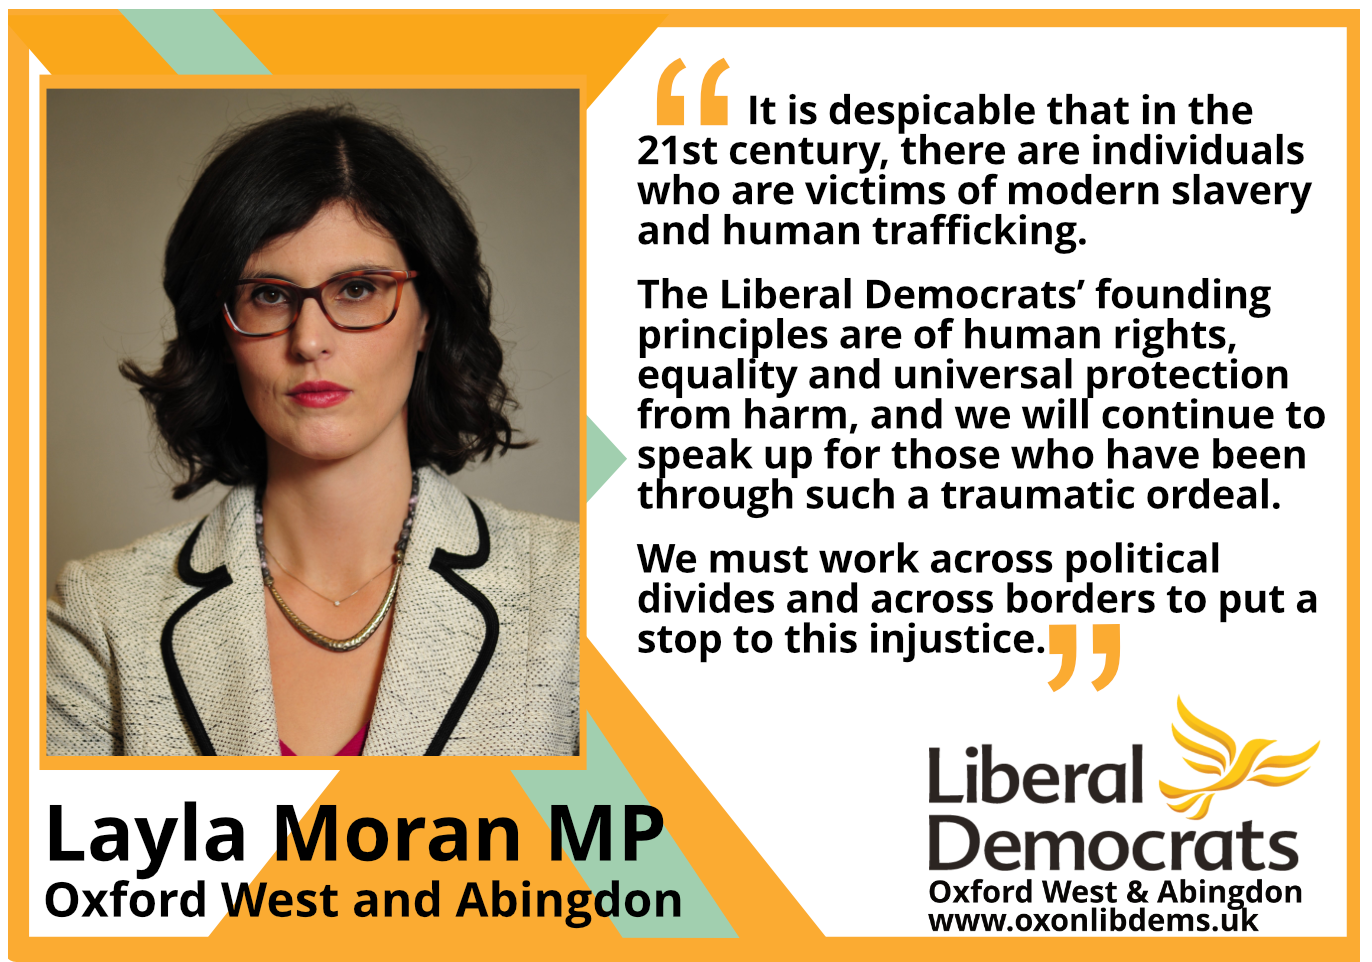 It is despicable that in the 21st century, there are individuals who are victims of modern slavery and human trafficking.